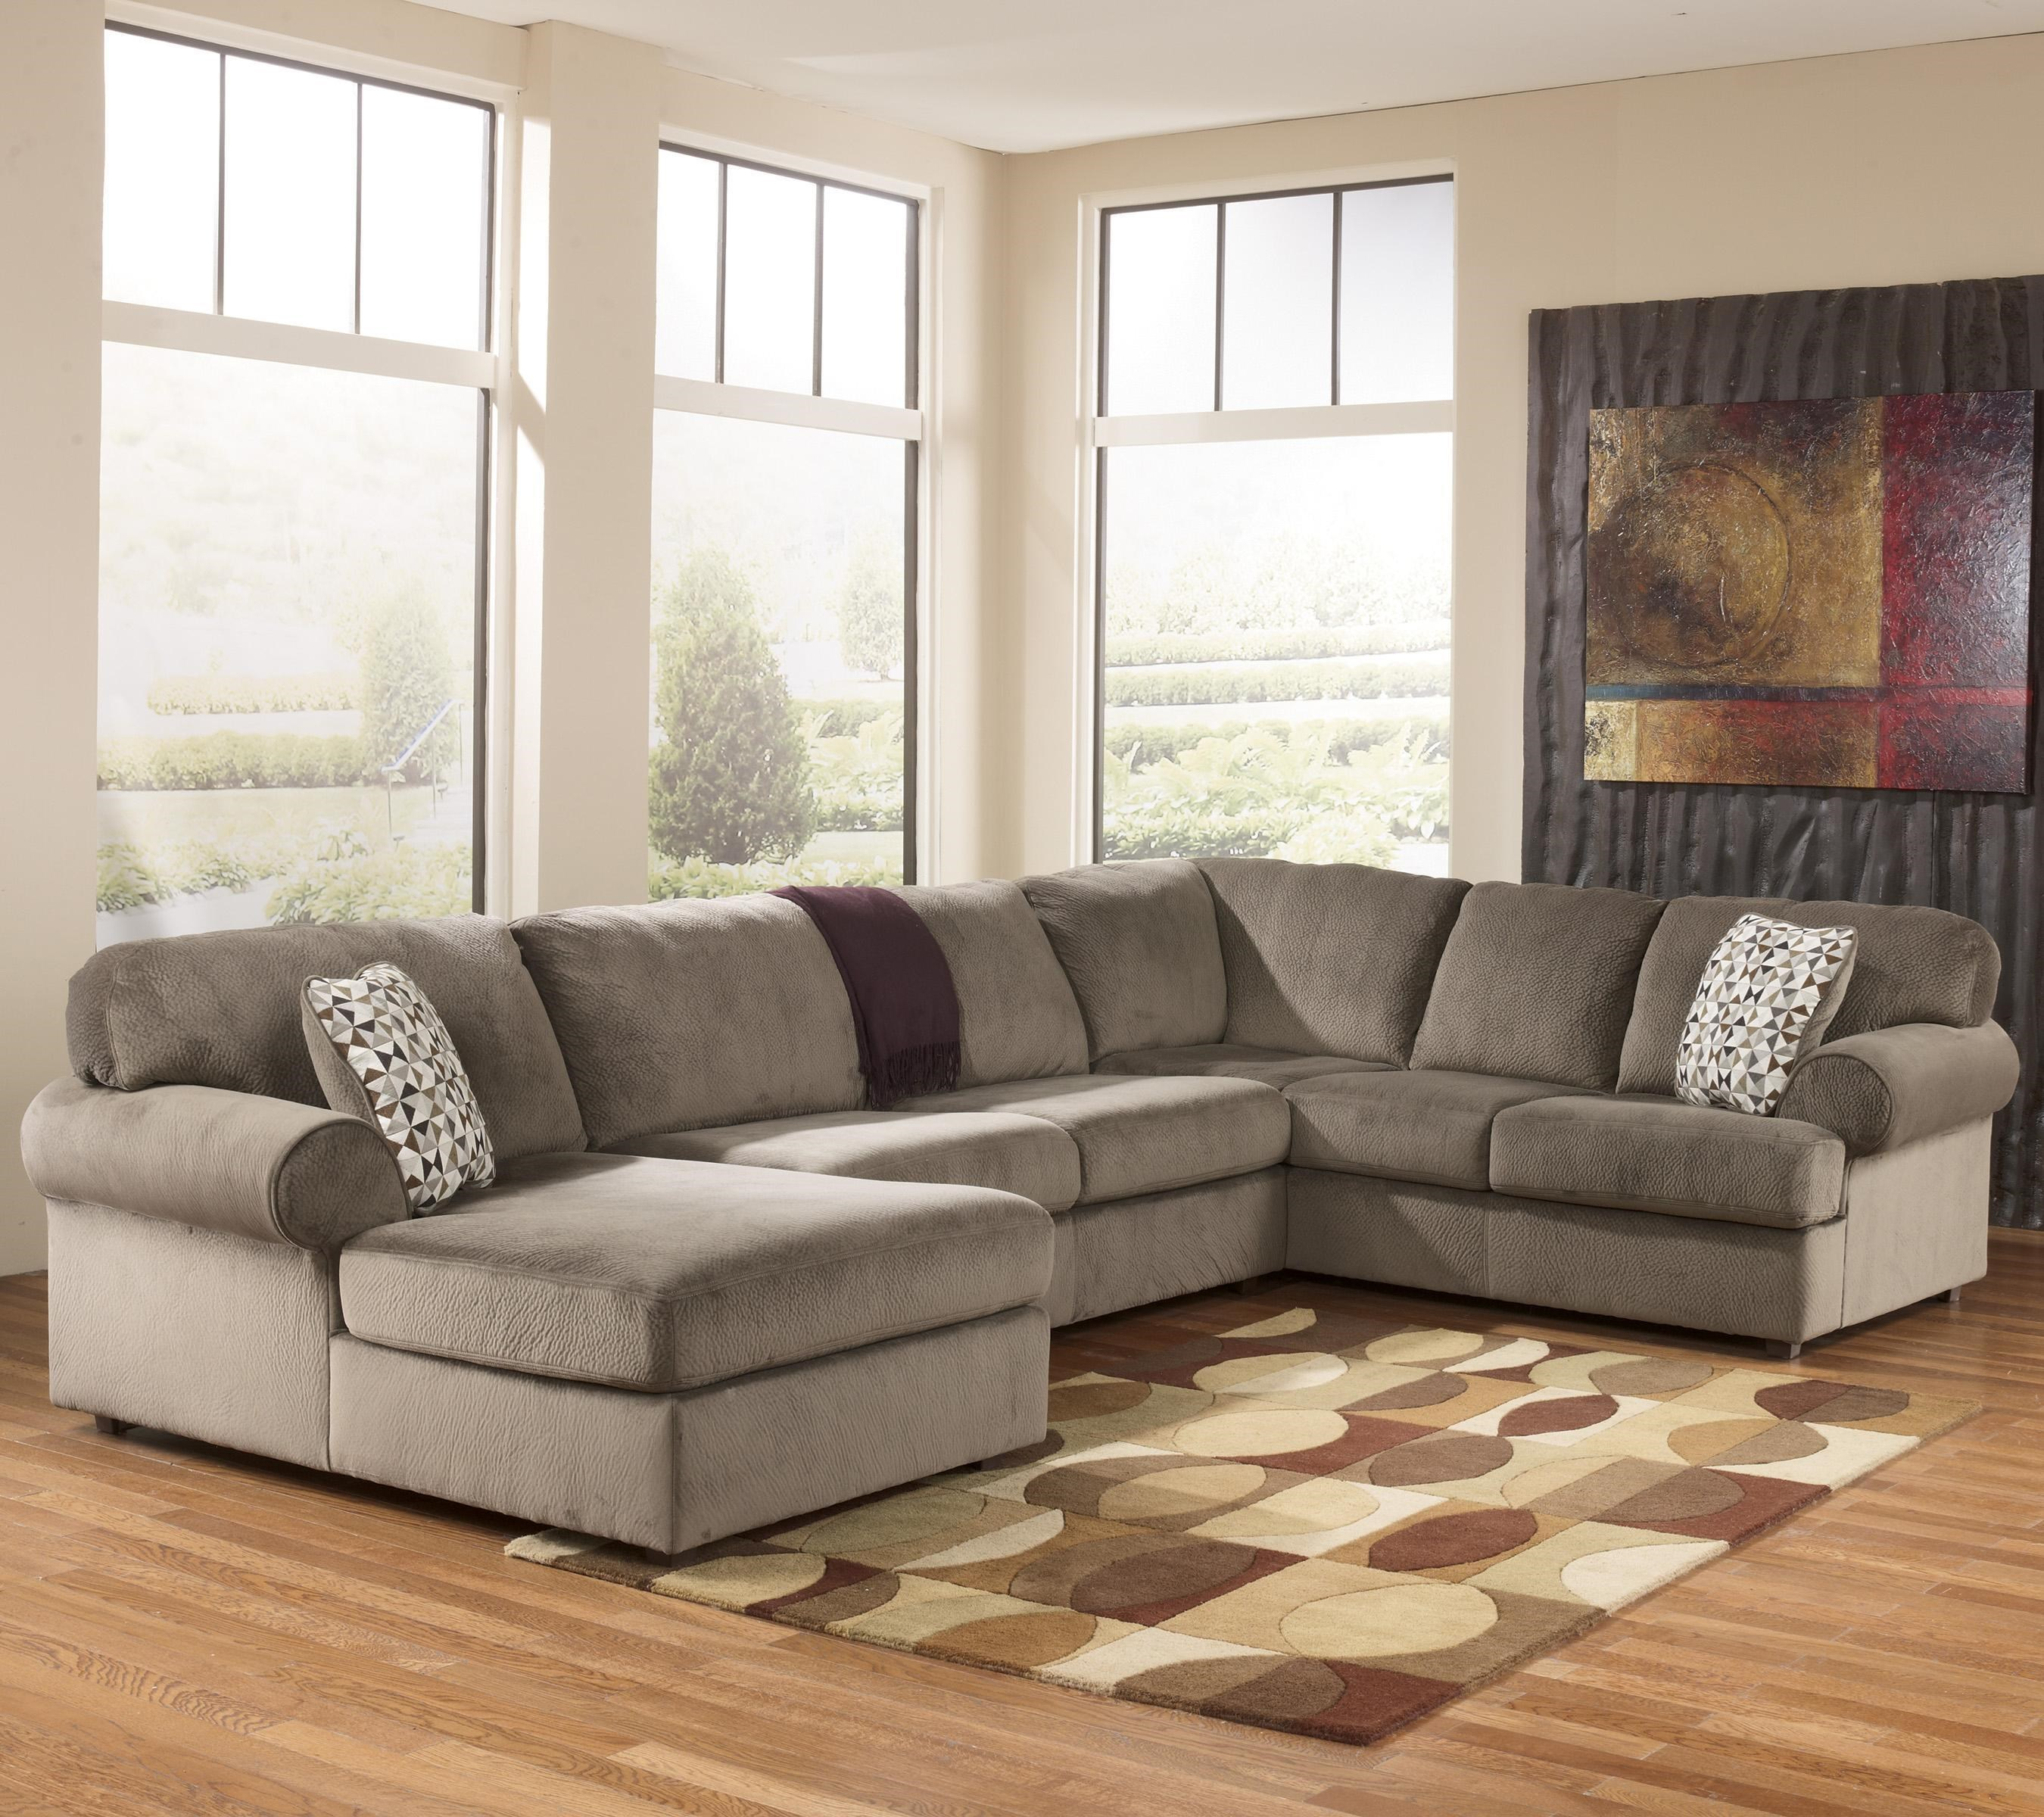 Surprising Casual Sectional Sofa With Left Chaise By Signature Design Pabps2019 Chair Design Images Pabps2019Com